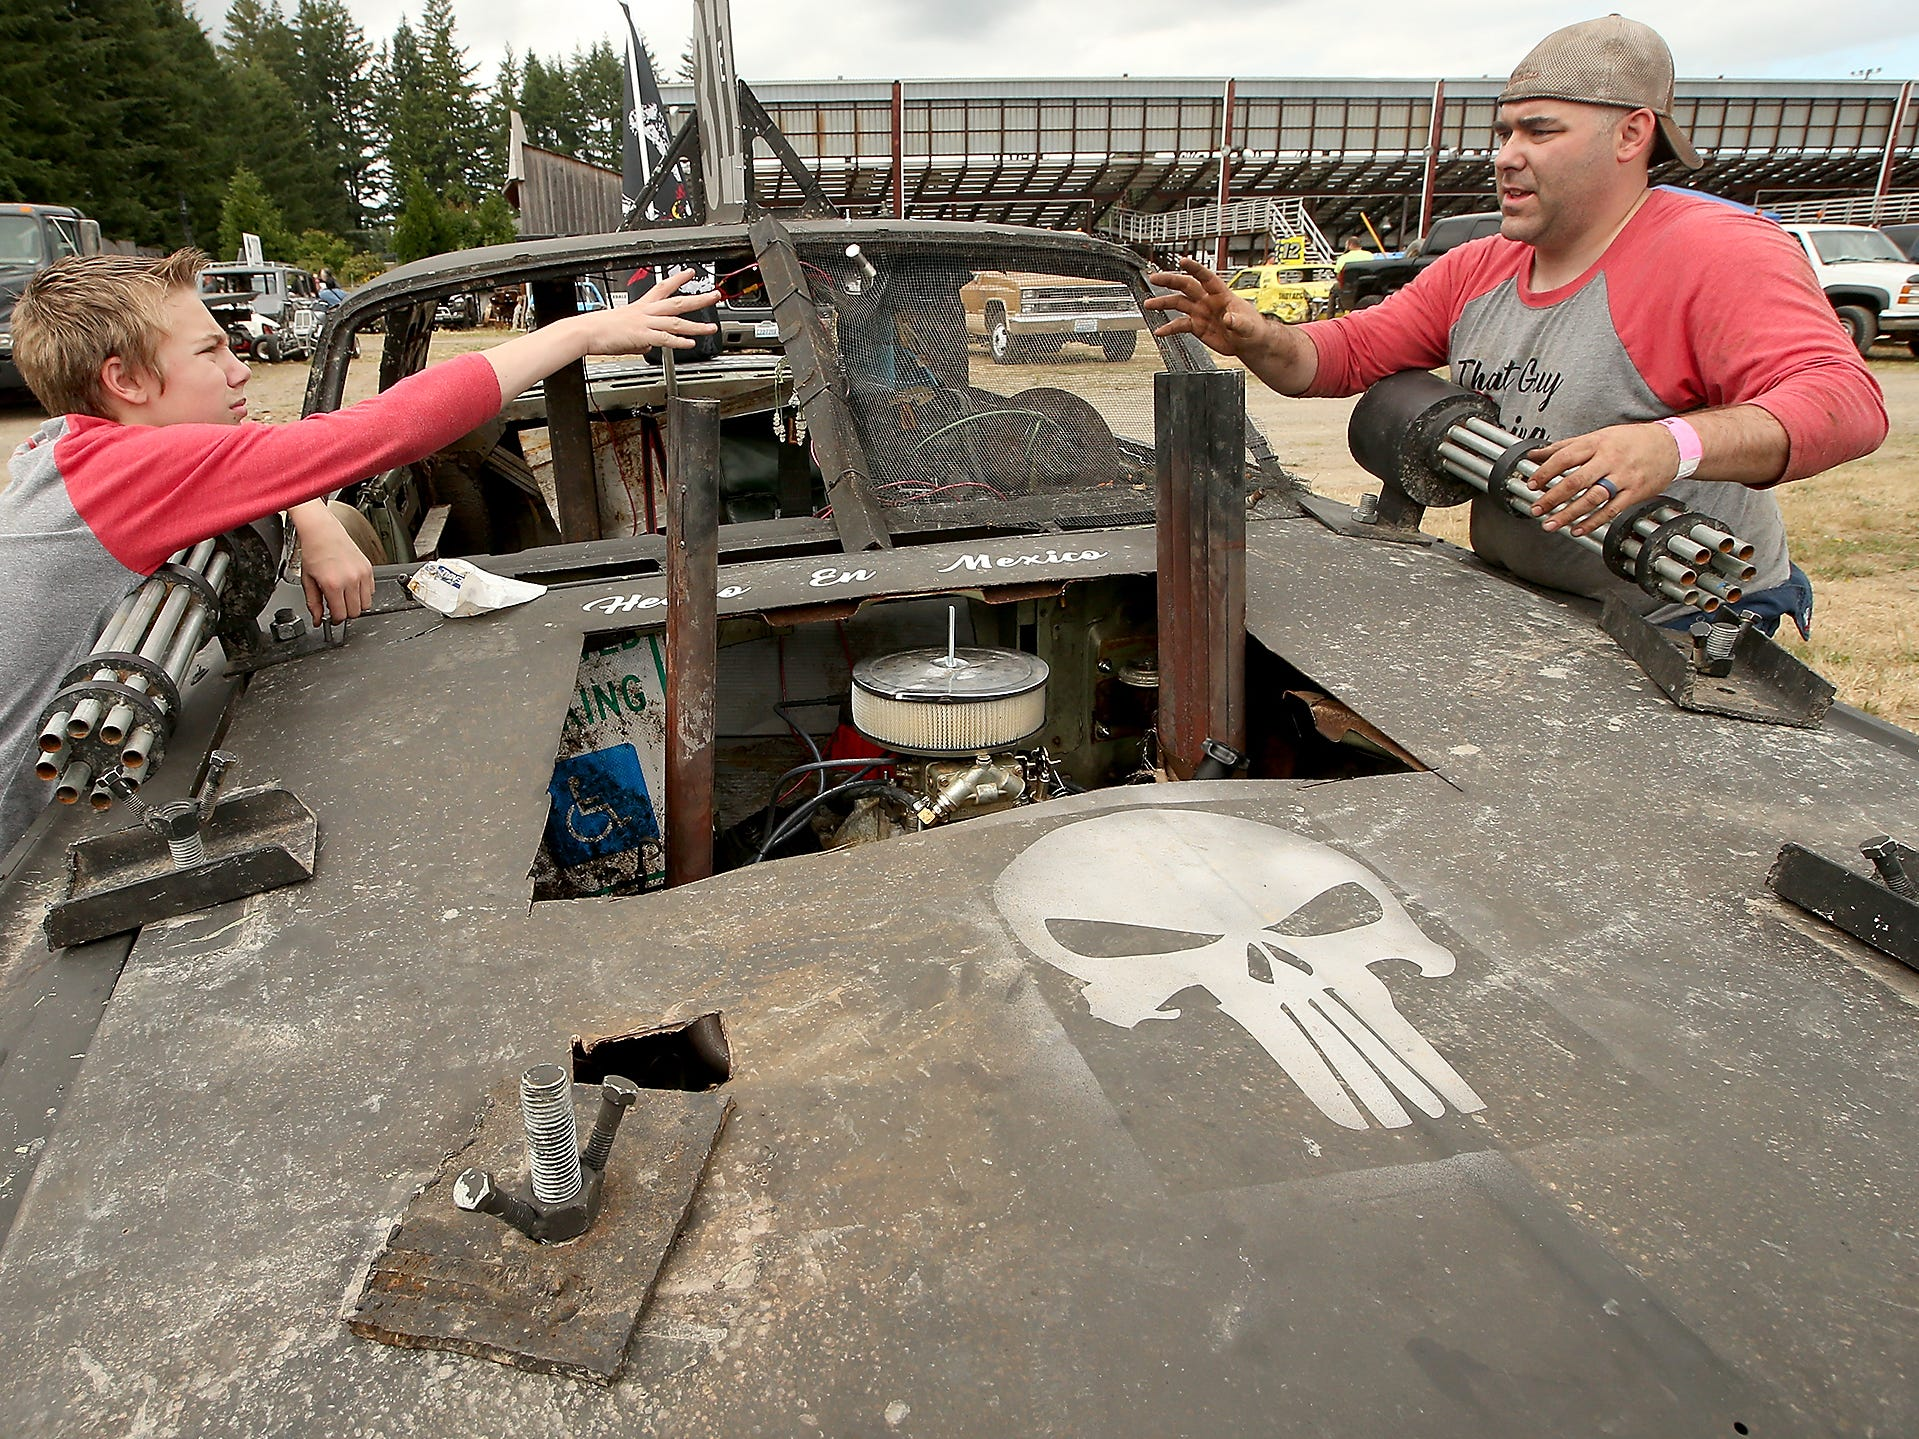 Pitman Zachary Lewis, 14, tosses a screw to his father Kevin as they attach the machine gun replicas to the hood of Kevin's car prior to the start of the Kitsap Destruction Derby at Thunderbird Stadium in Bremerton, Washington on Saturday, June 23, 2018.